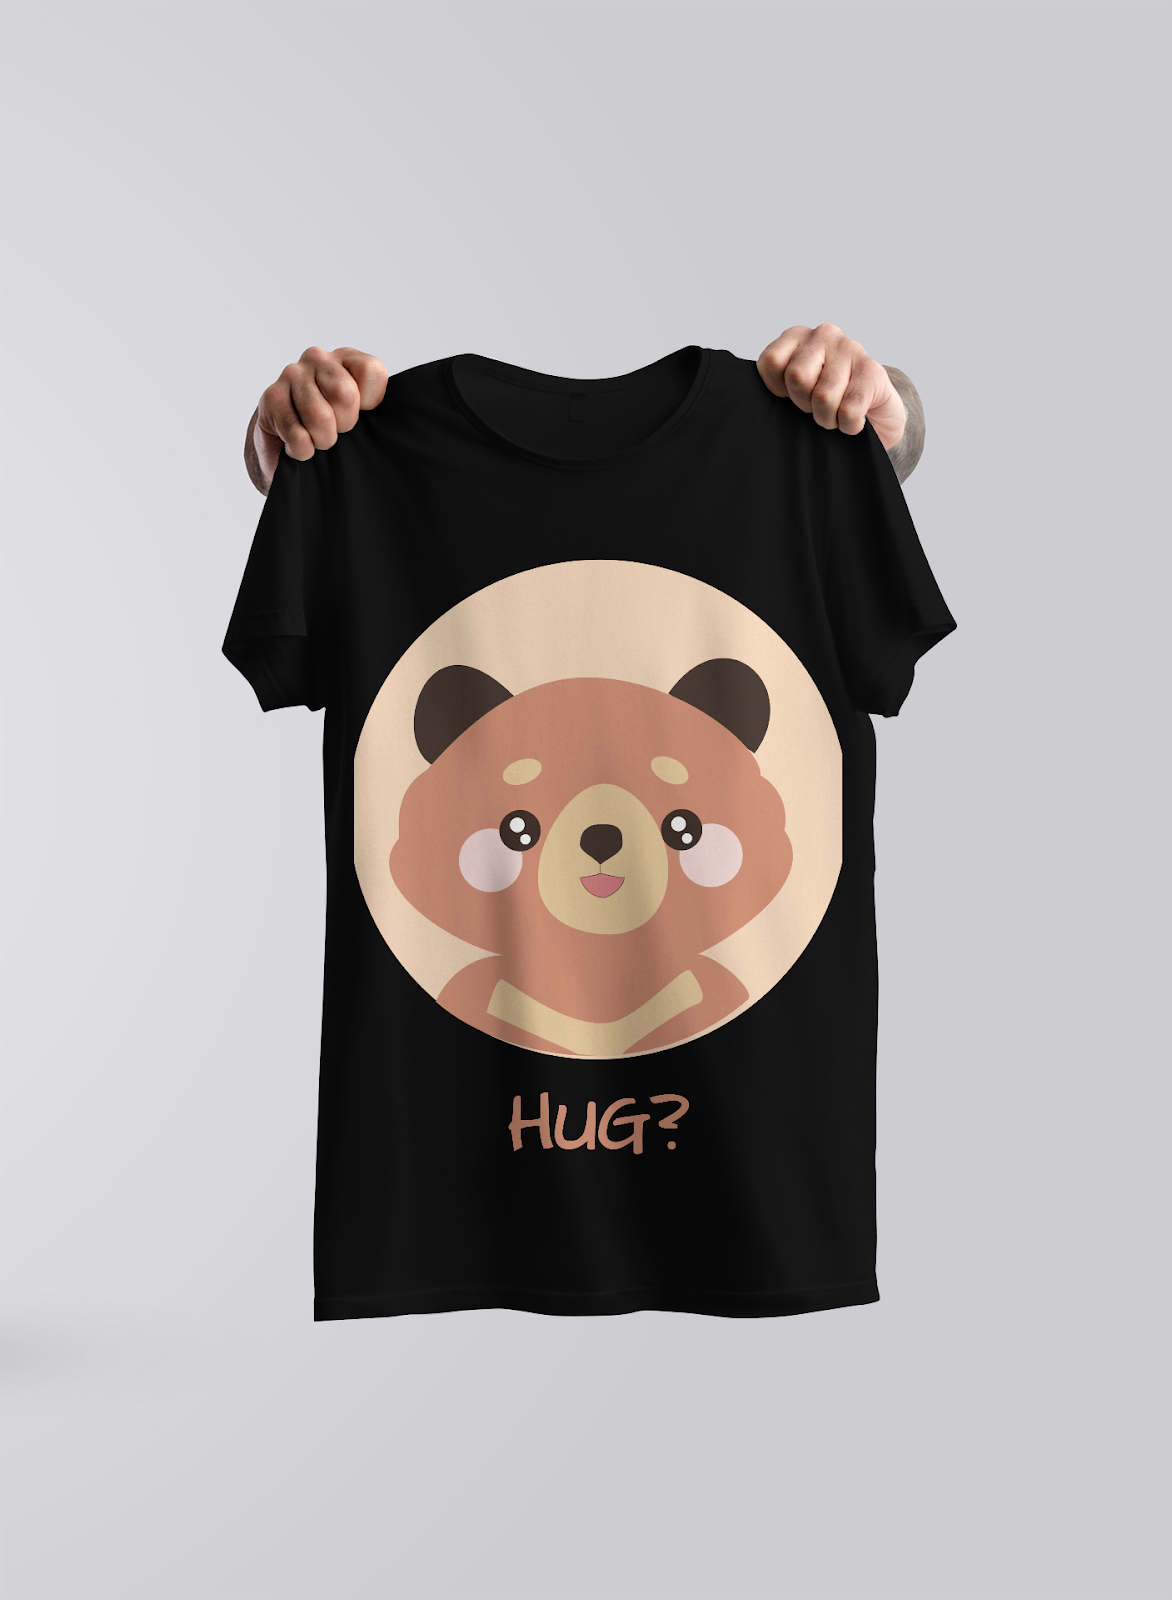 black t-shirt with teddy bear design for a print-on-demand business